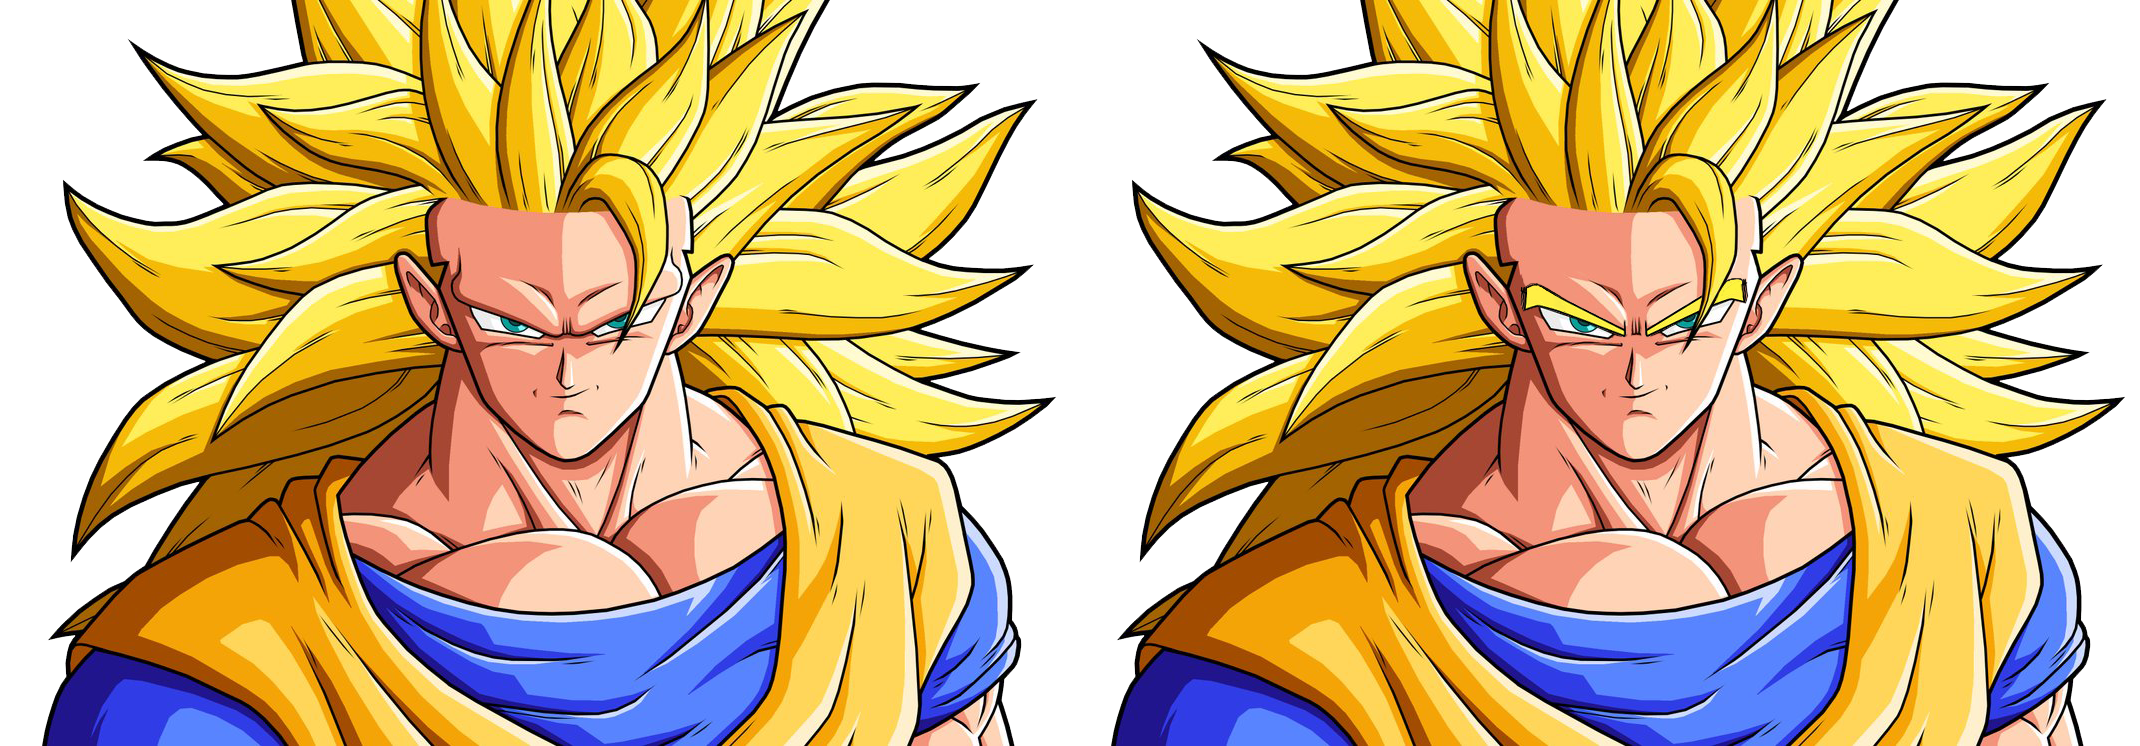 Transformation drawing ssj3. How to you guys